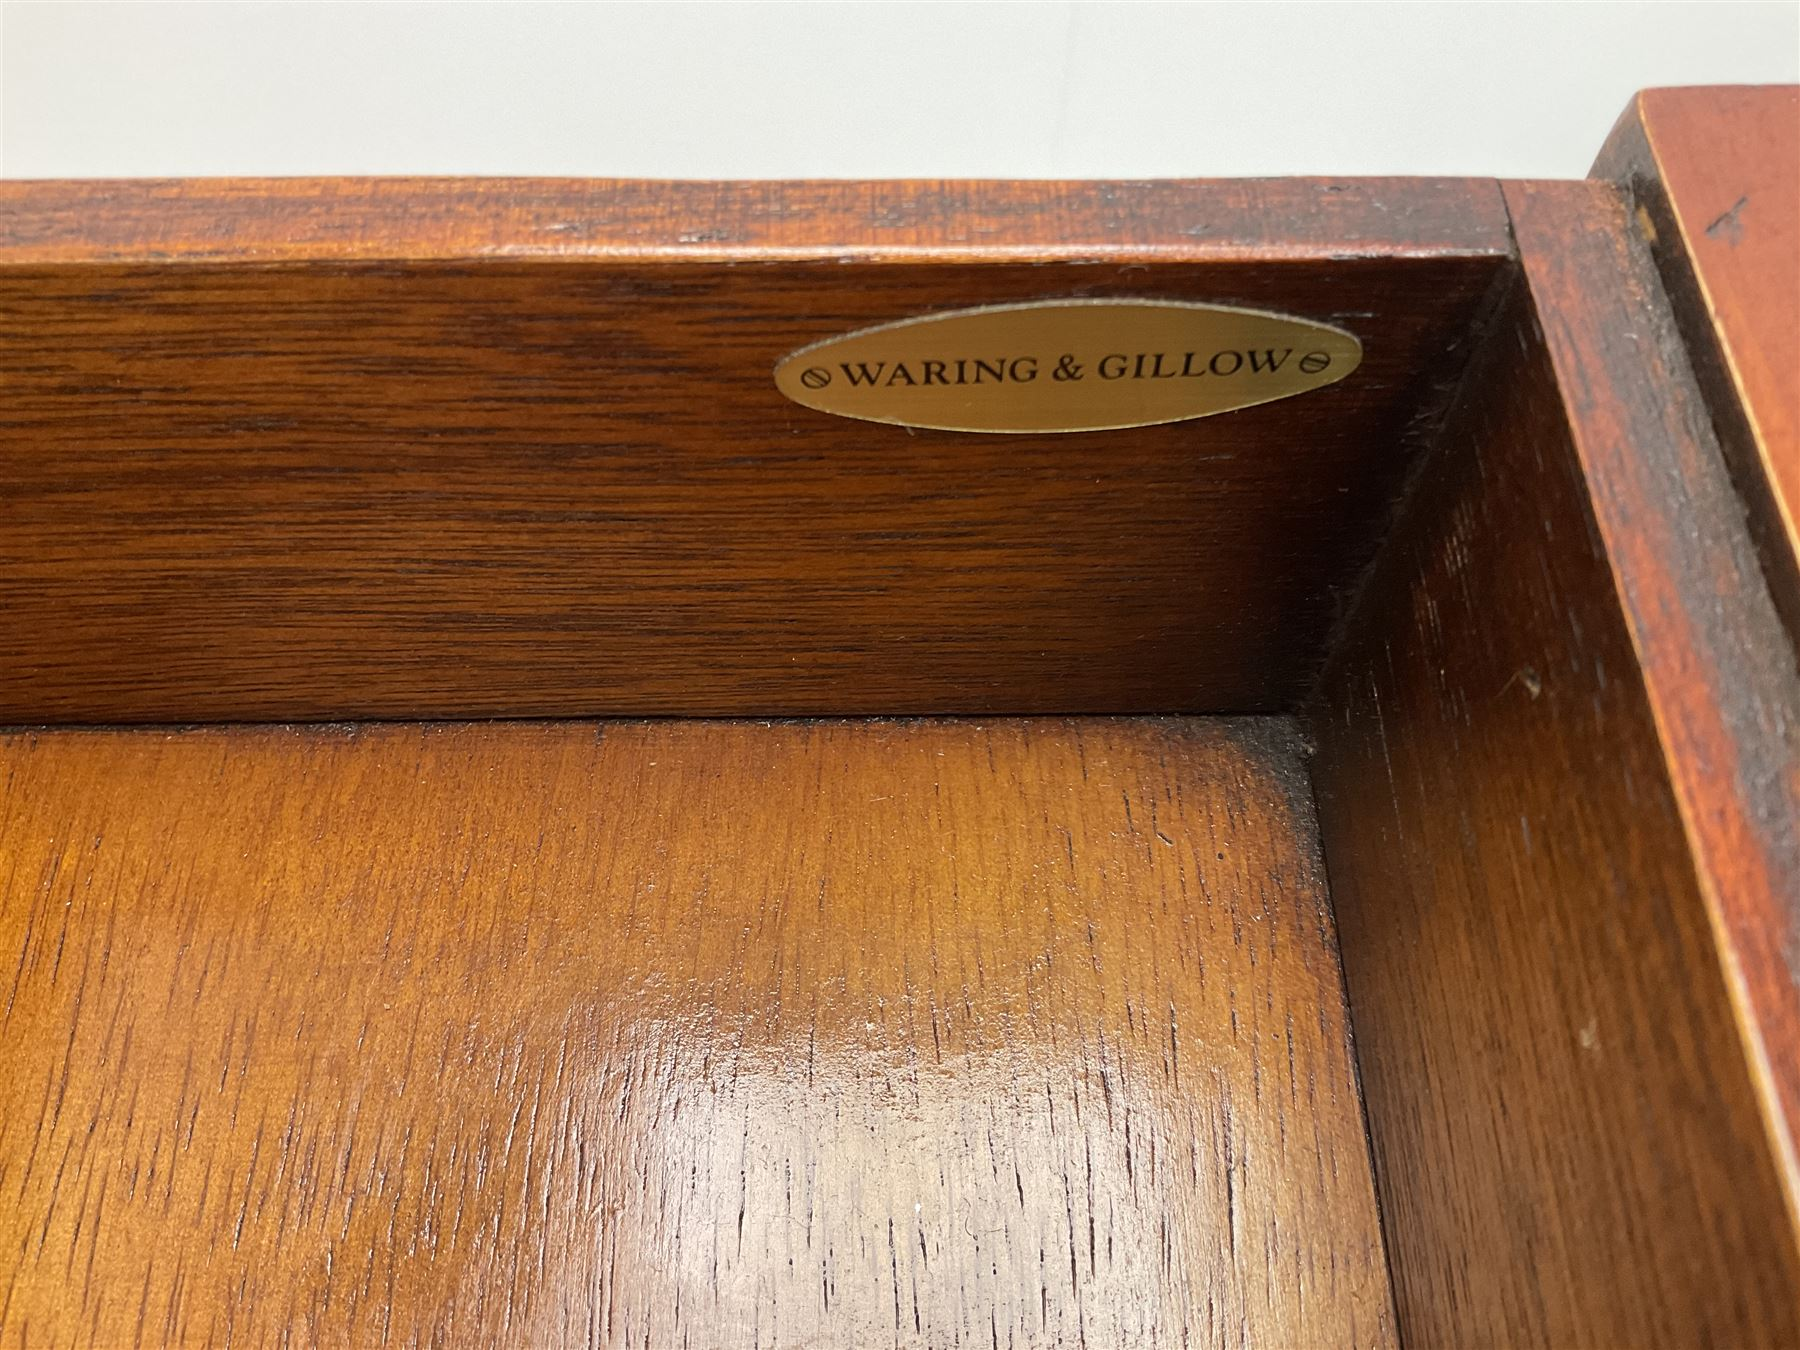 Waring & Gillow - cherry wood sideboard - Image 6 of 6